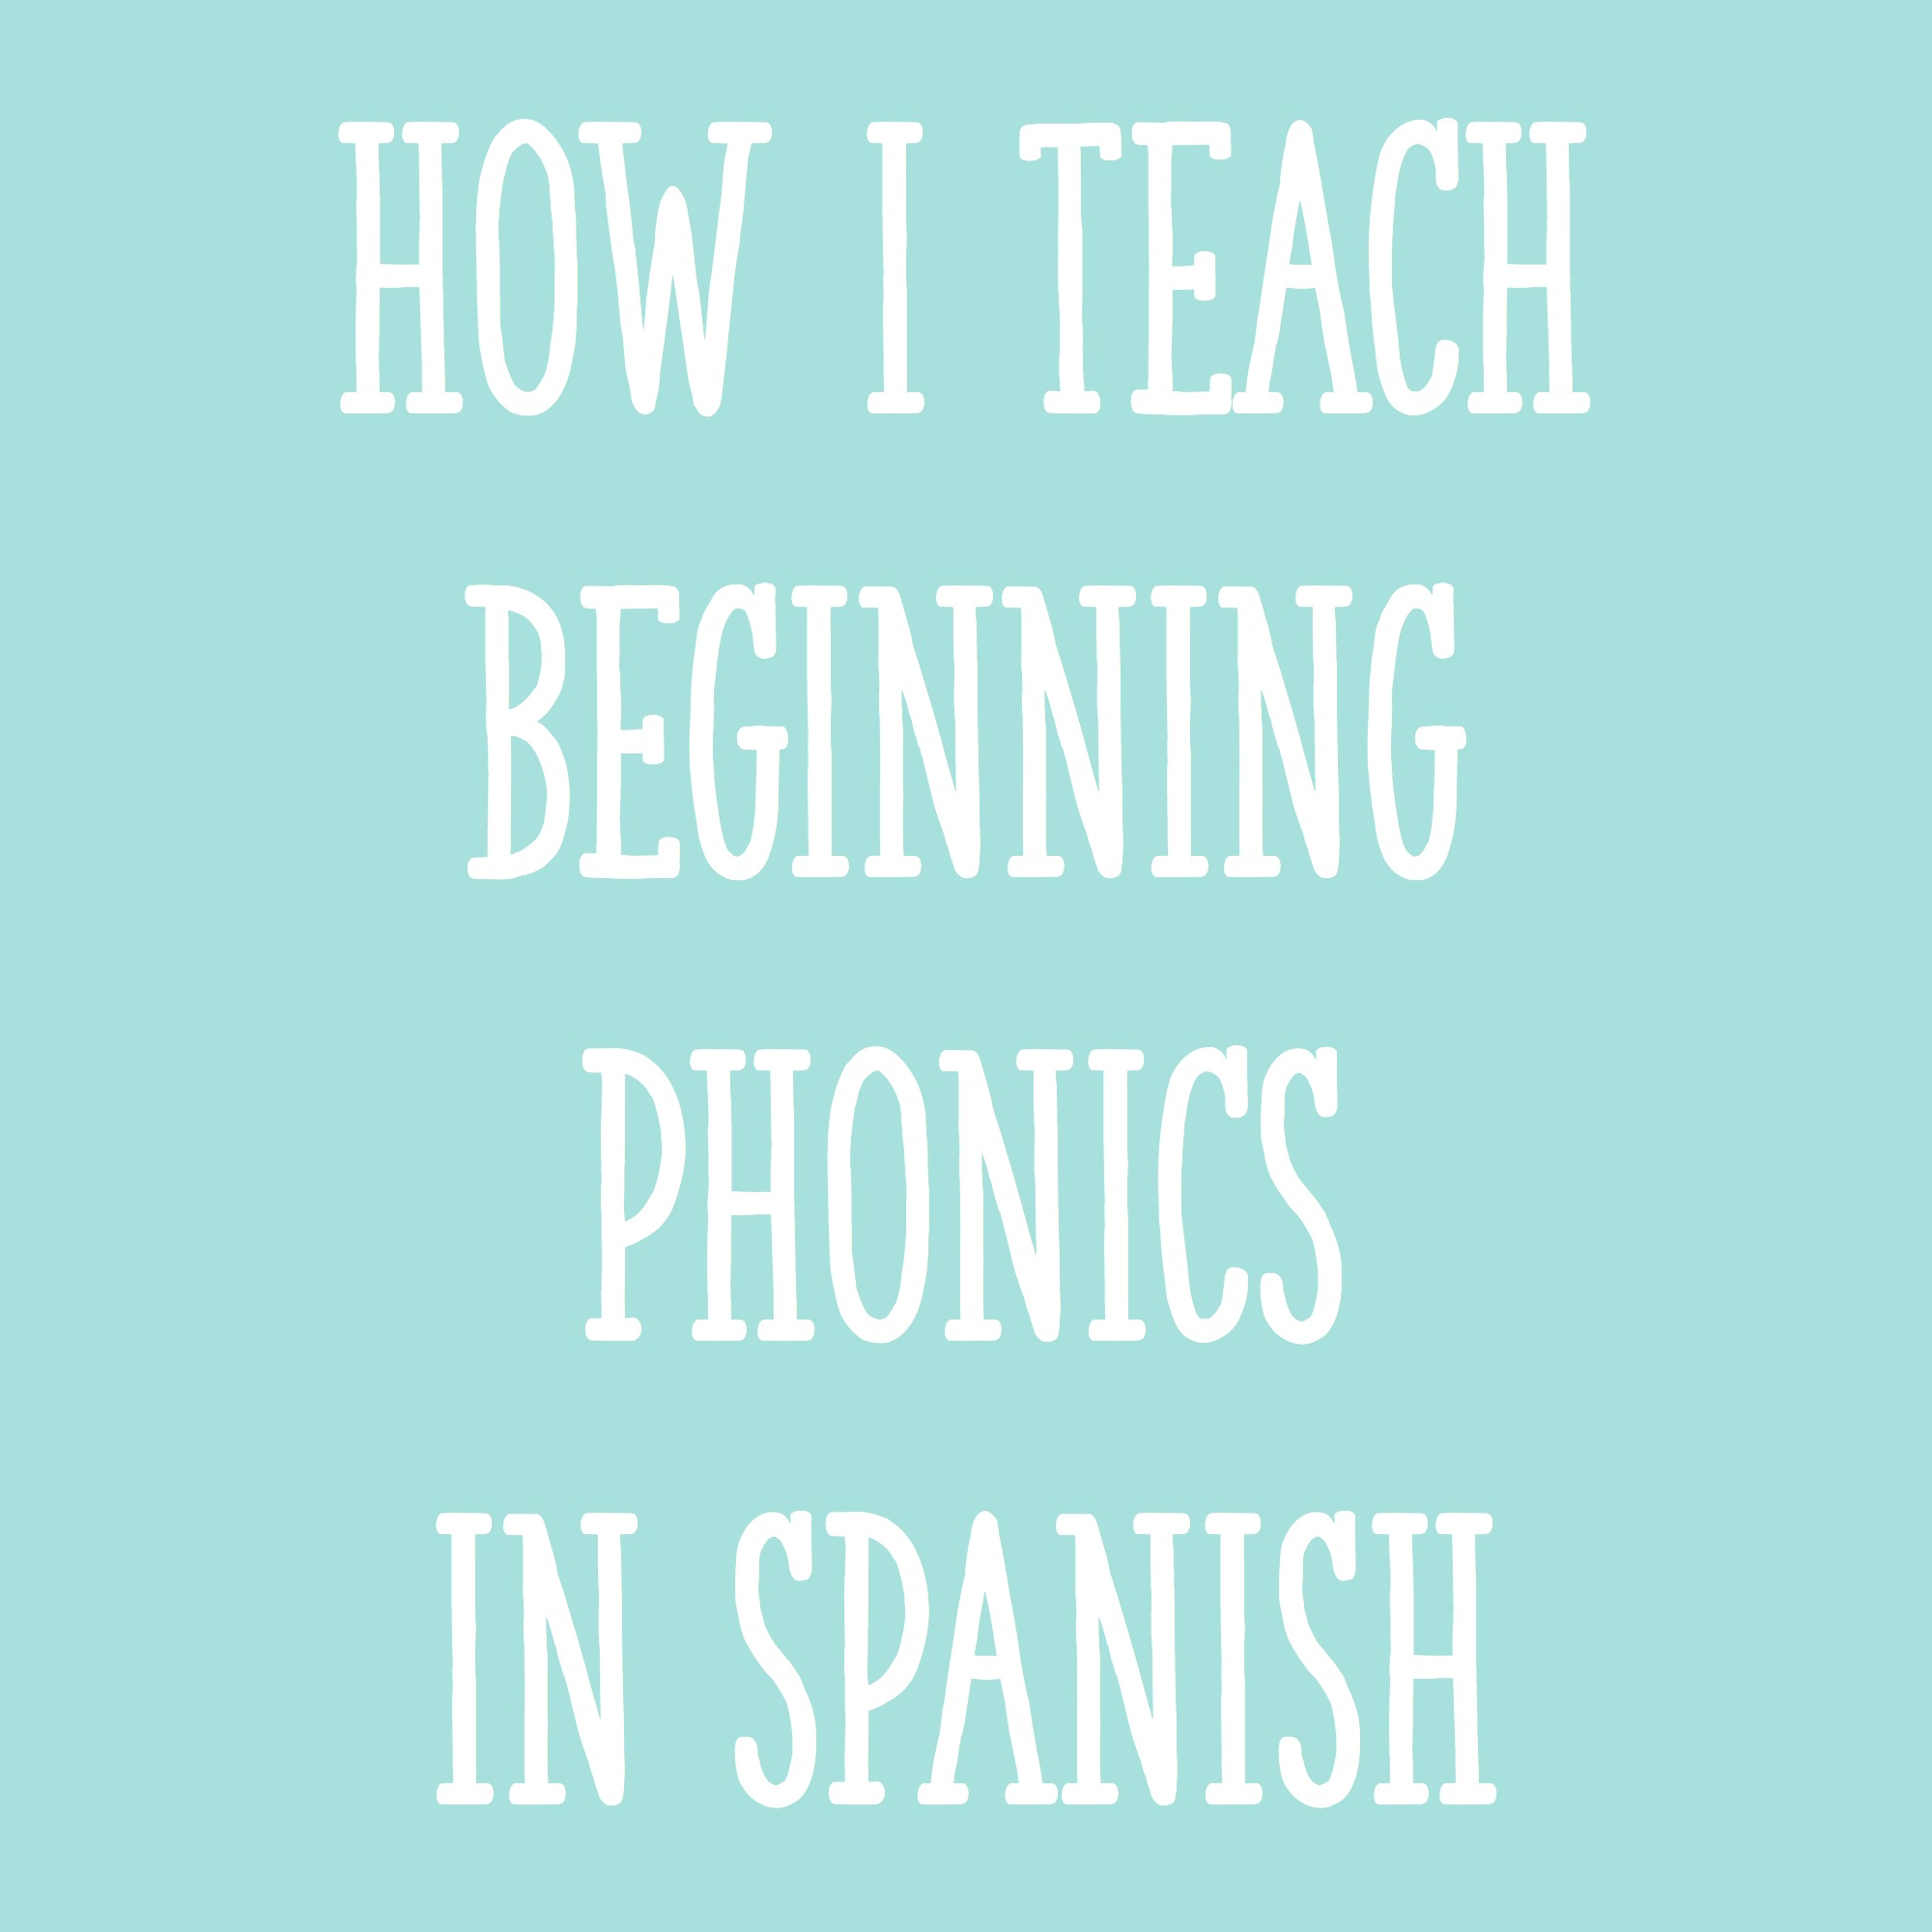 How I Teach Beginning Phonics in Spanish - Learning at the